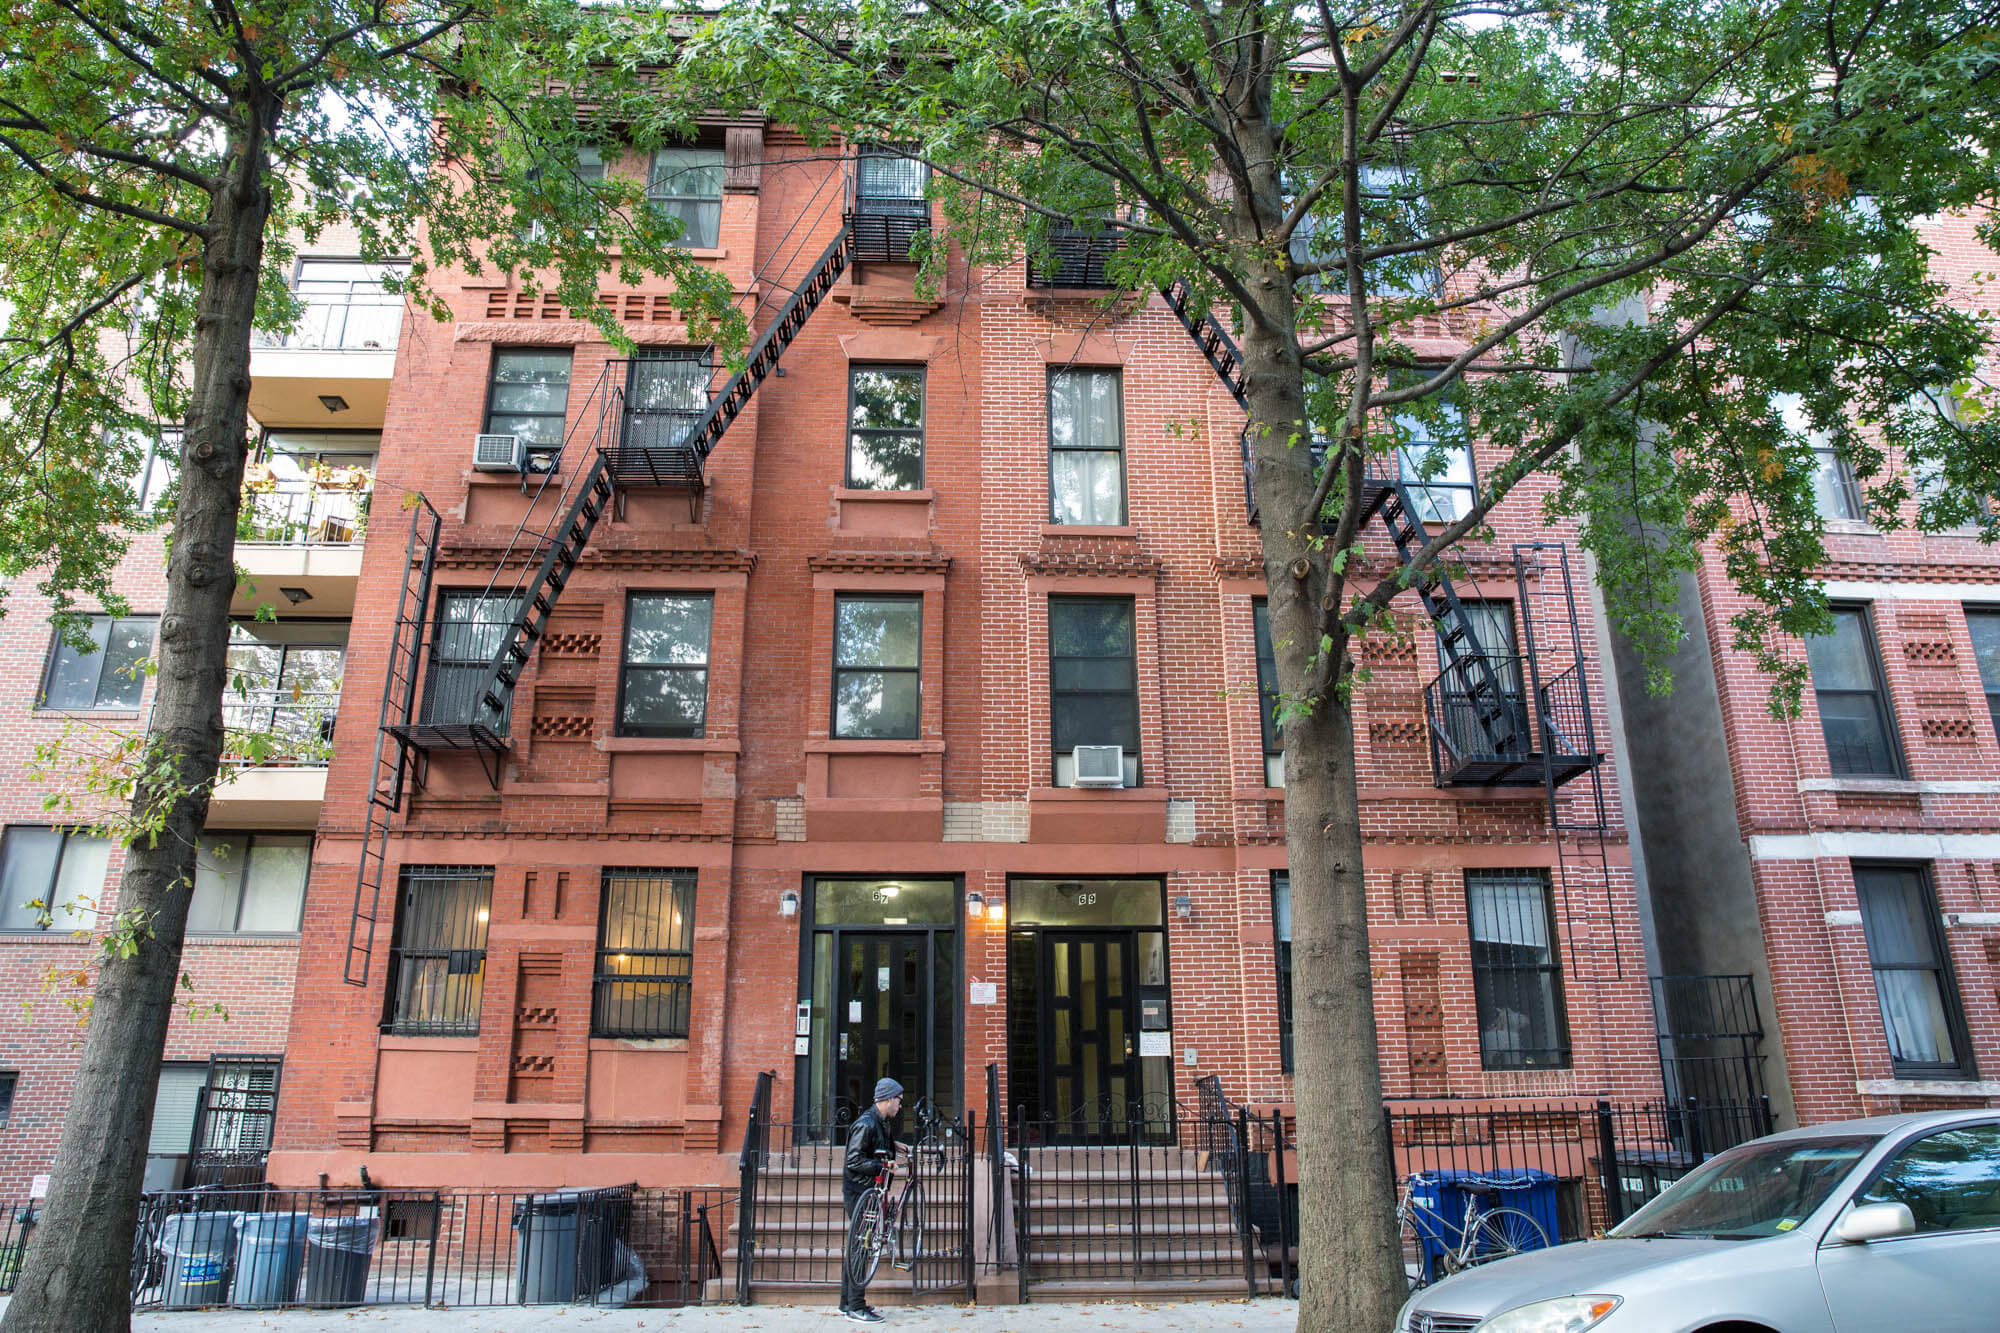 Rent Stabilized Apartment Brooklyn Landlord Overcharging